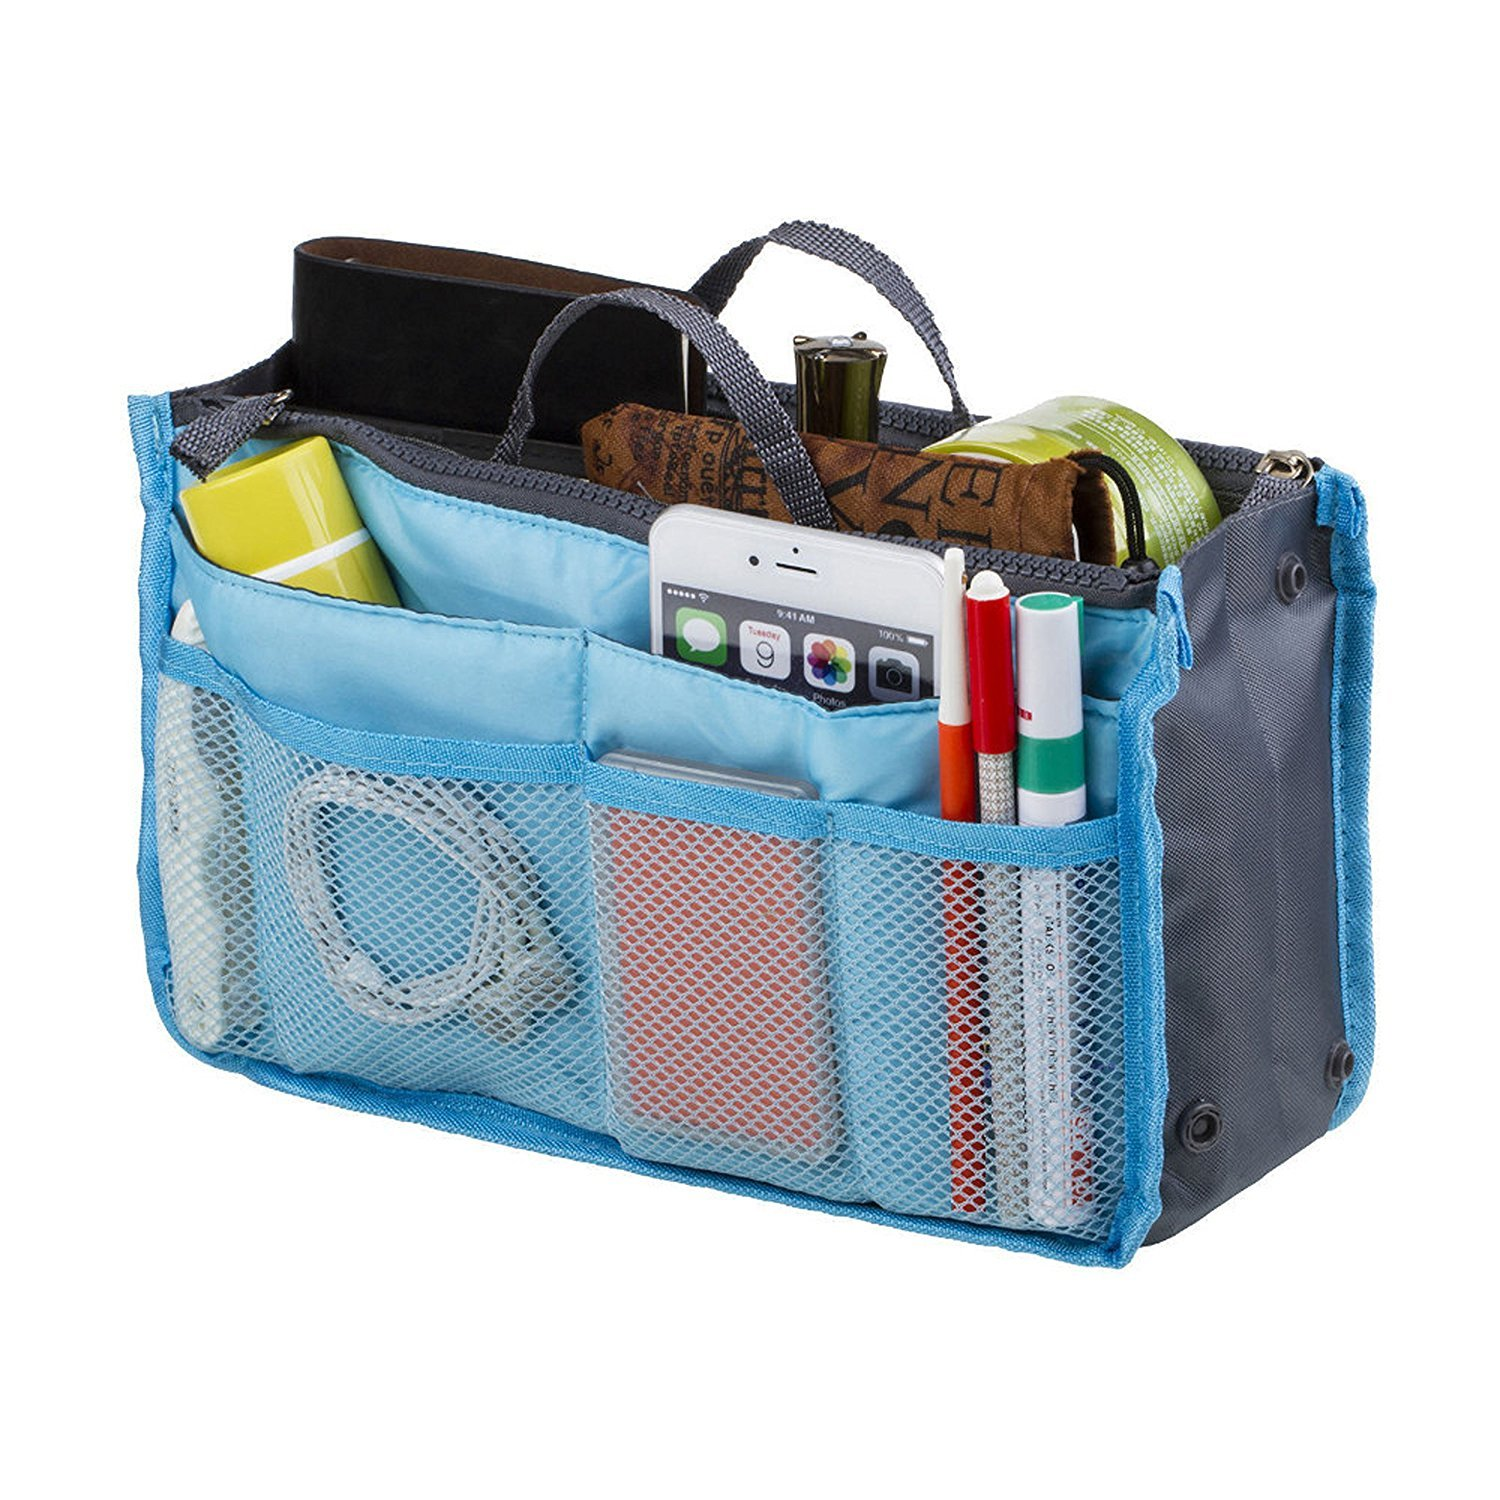 Go Beyond (TM) Top Quality Blue Organizer Travel Bag For Women| 12 Compartment Tote/ Toiletry Bag For Makeup & Travel/ Cosmetic Accessories Organizing| Insert-Organizer| Women's Handbags by Go Beyond (TM) (Image #1)